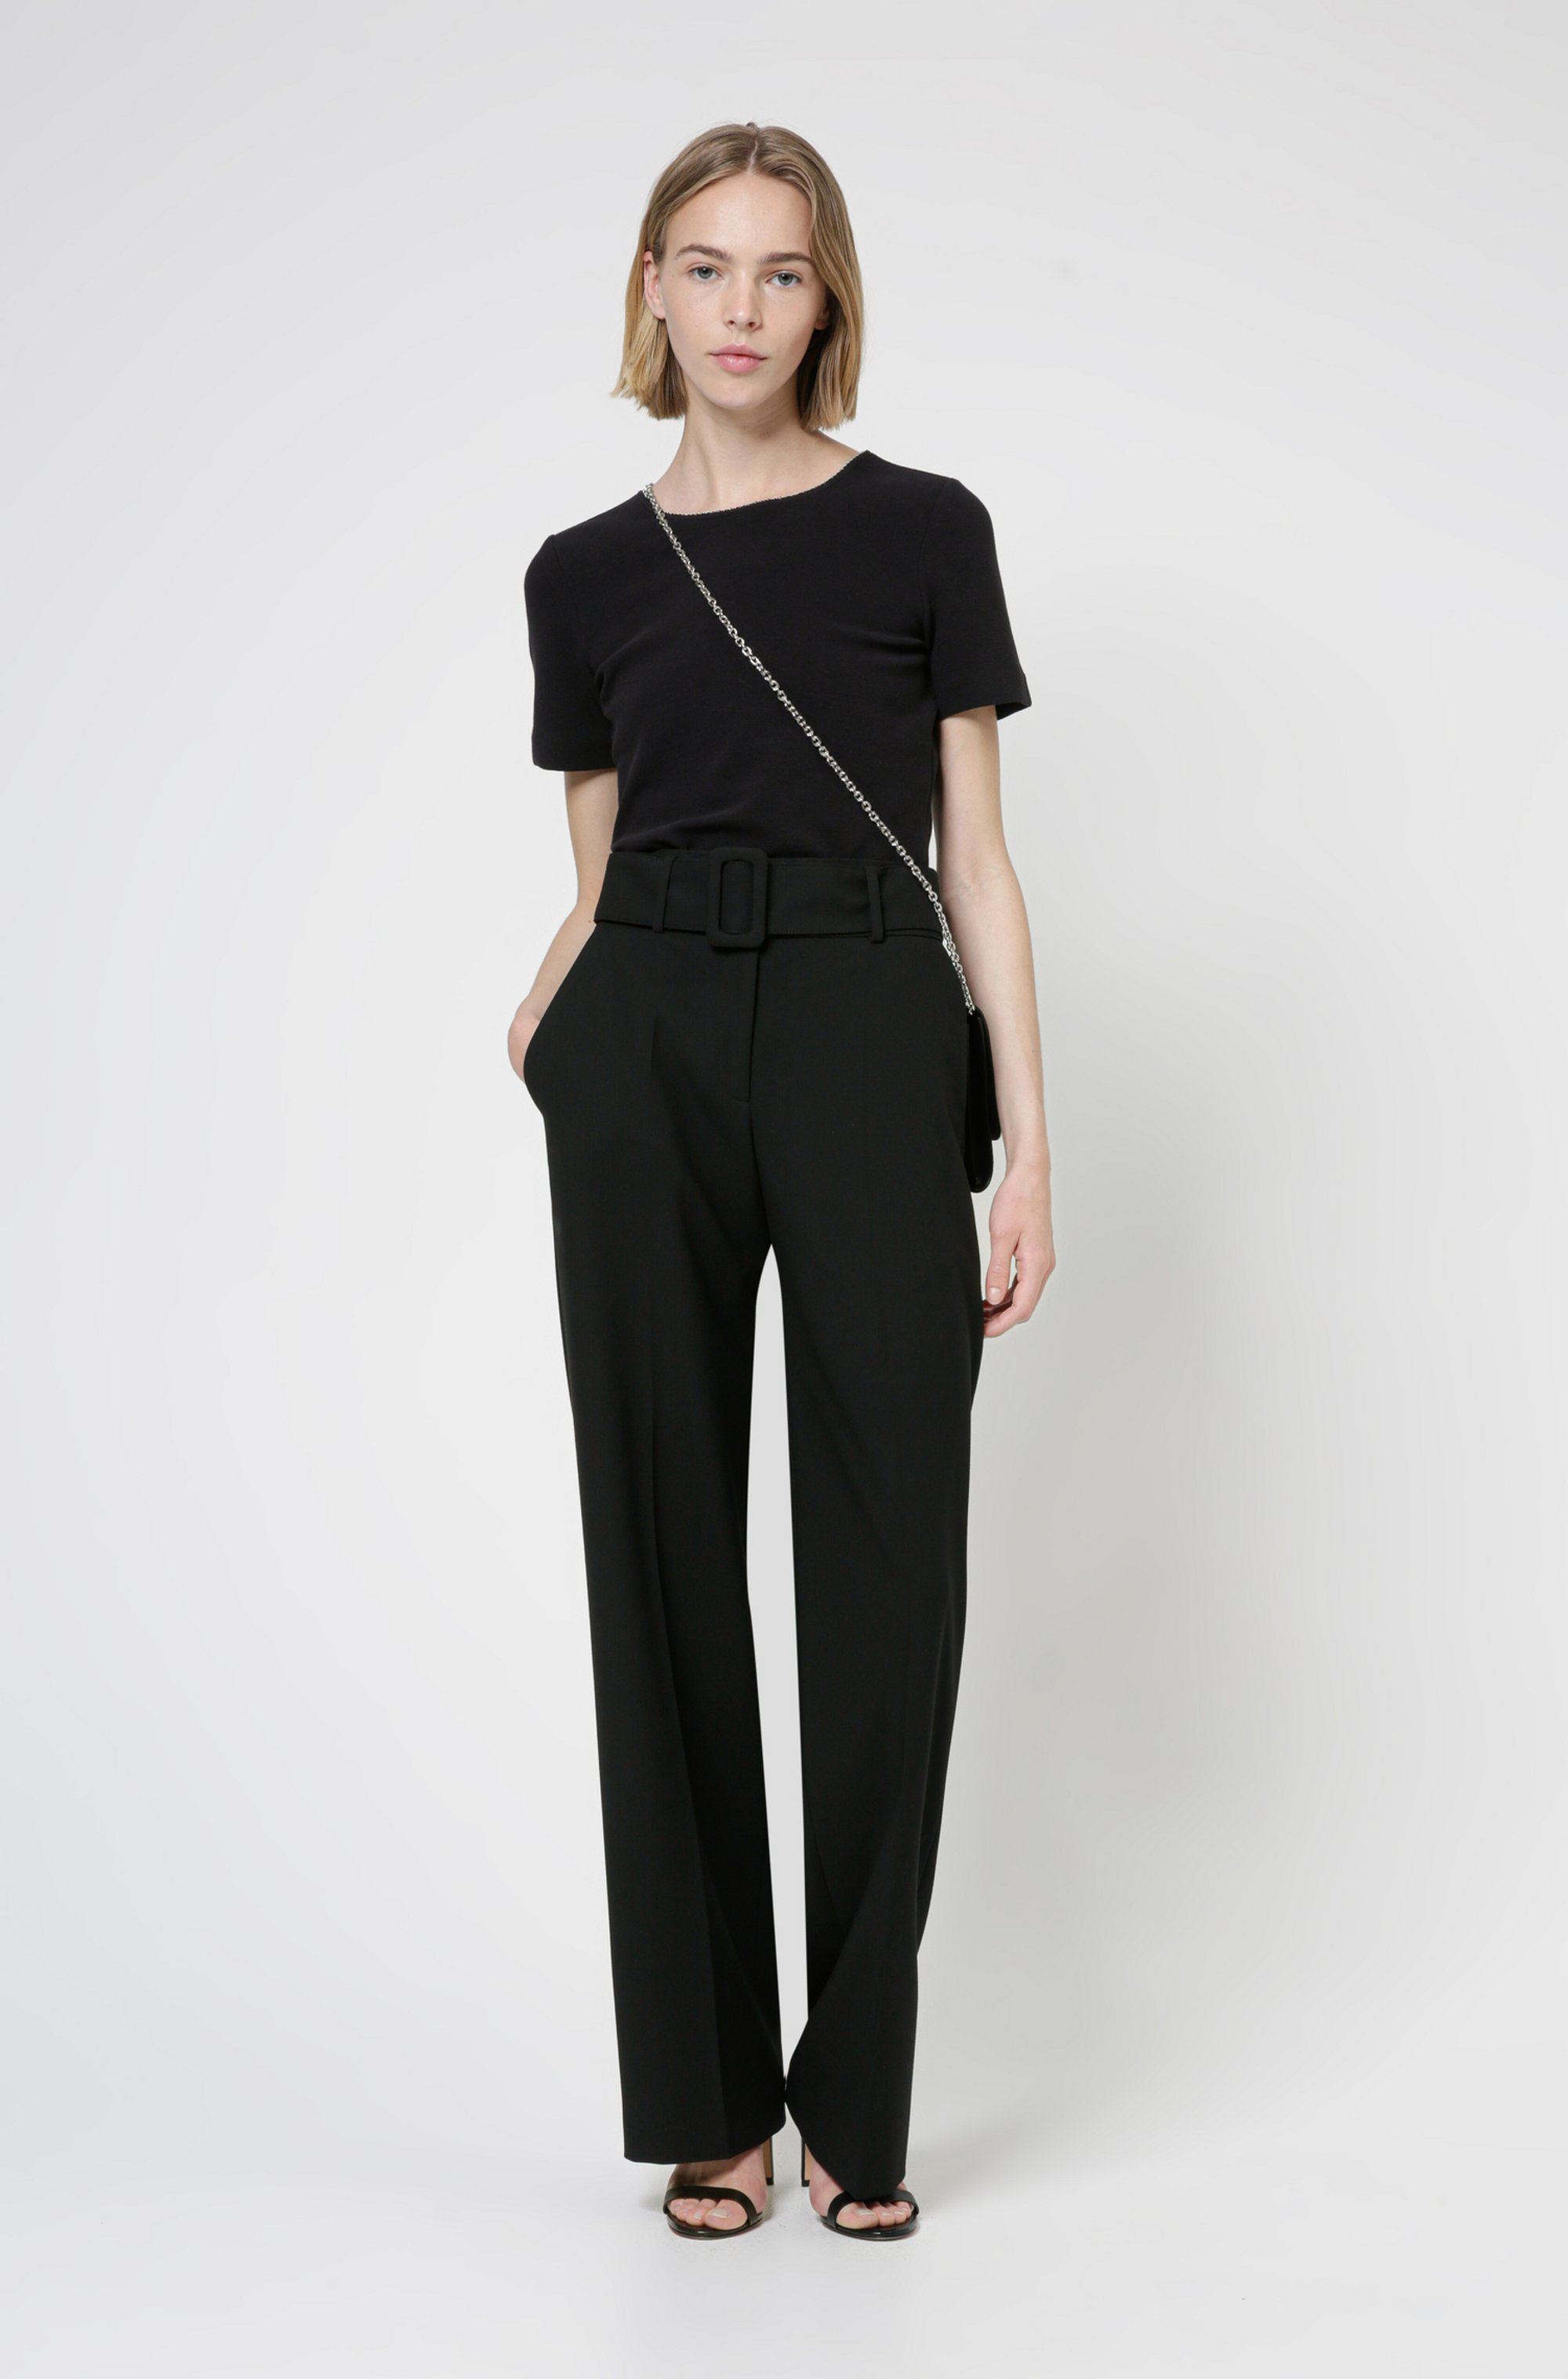 Scoop-neck T-shirt in stretch jersey with metallic trim